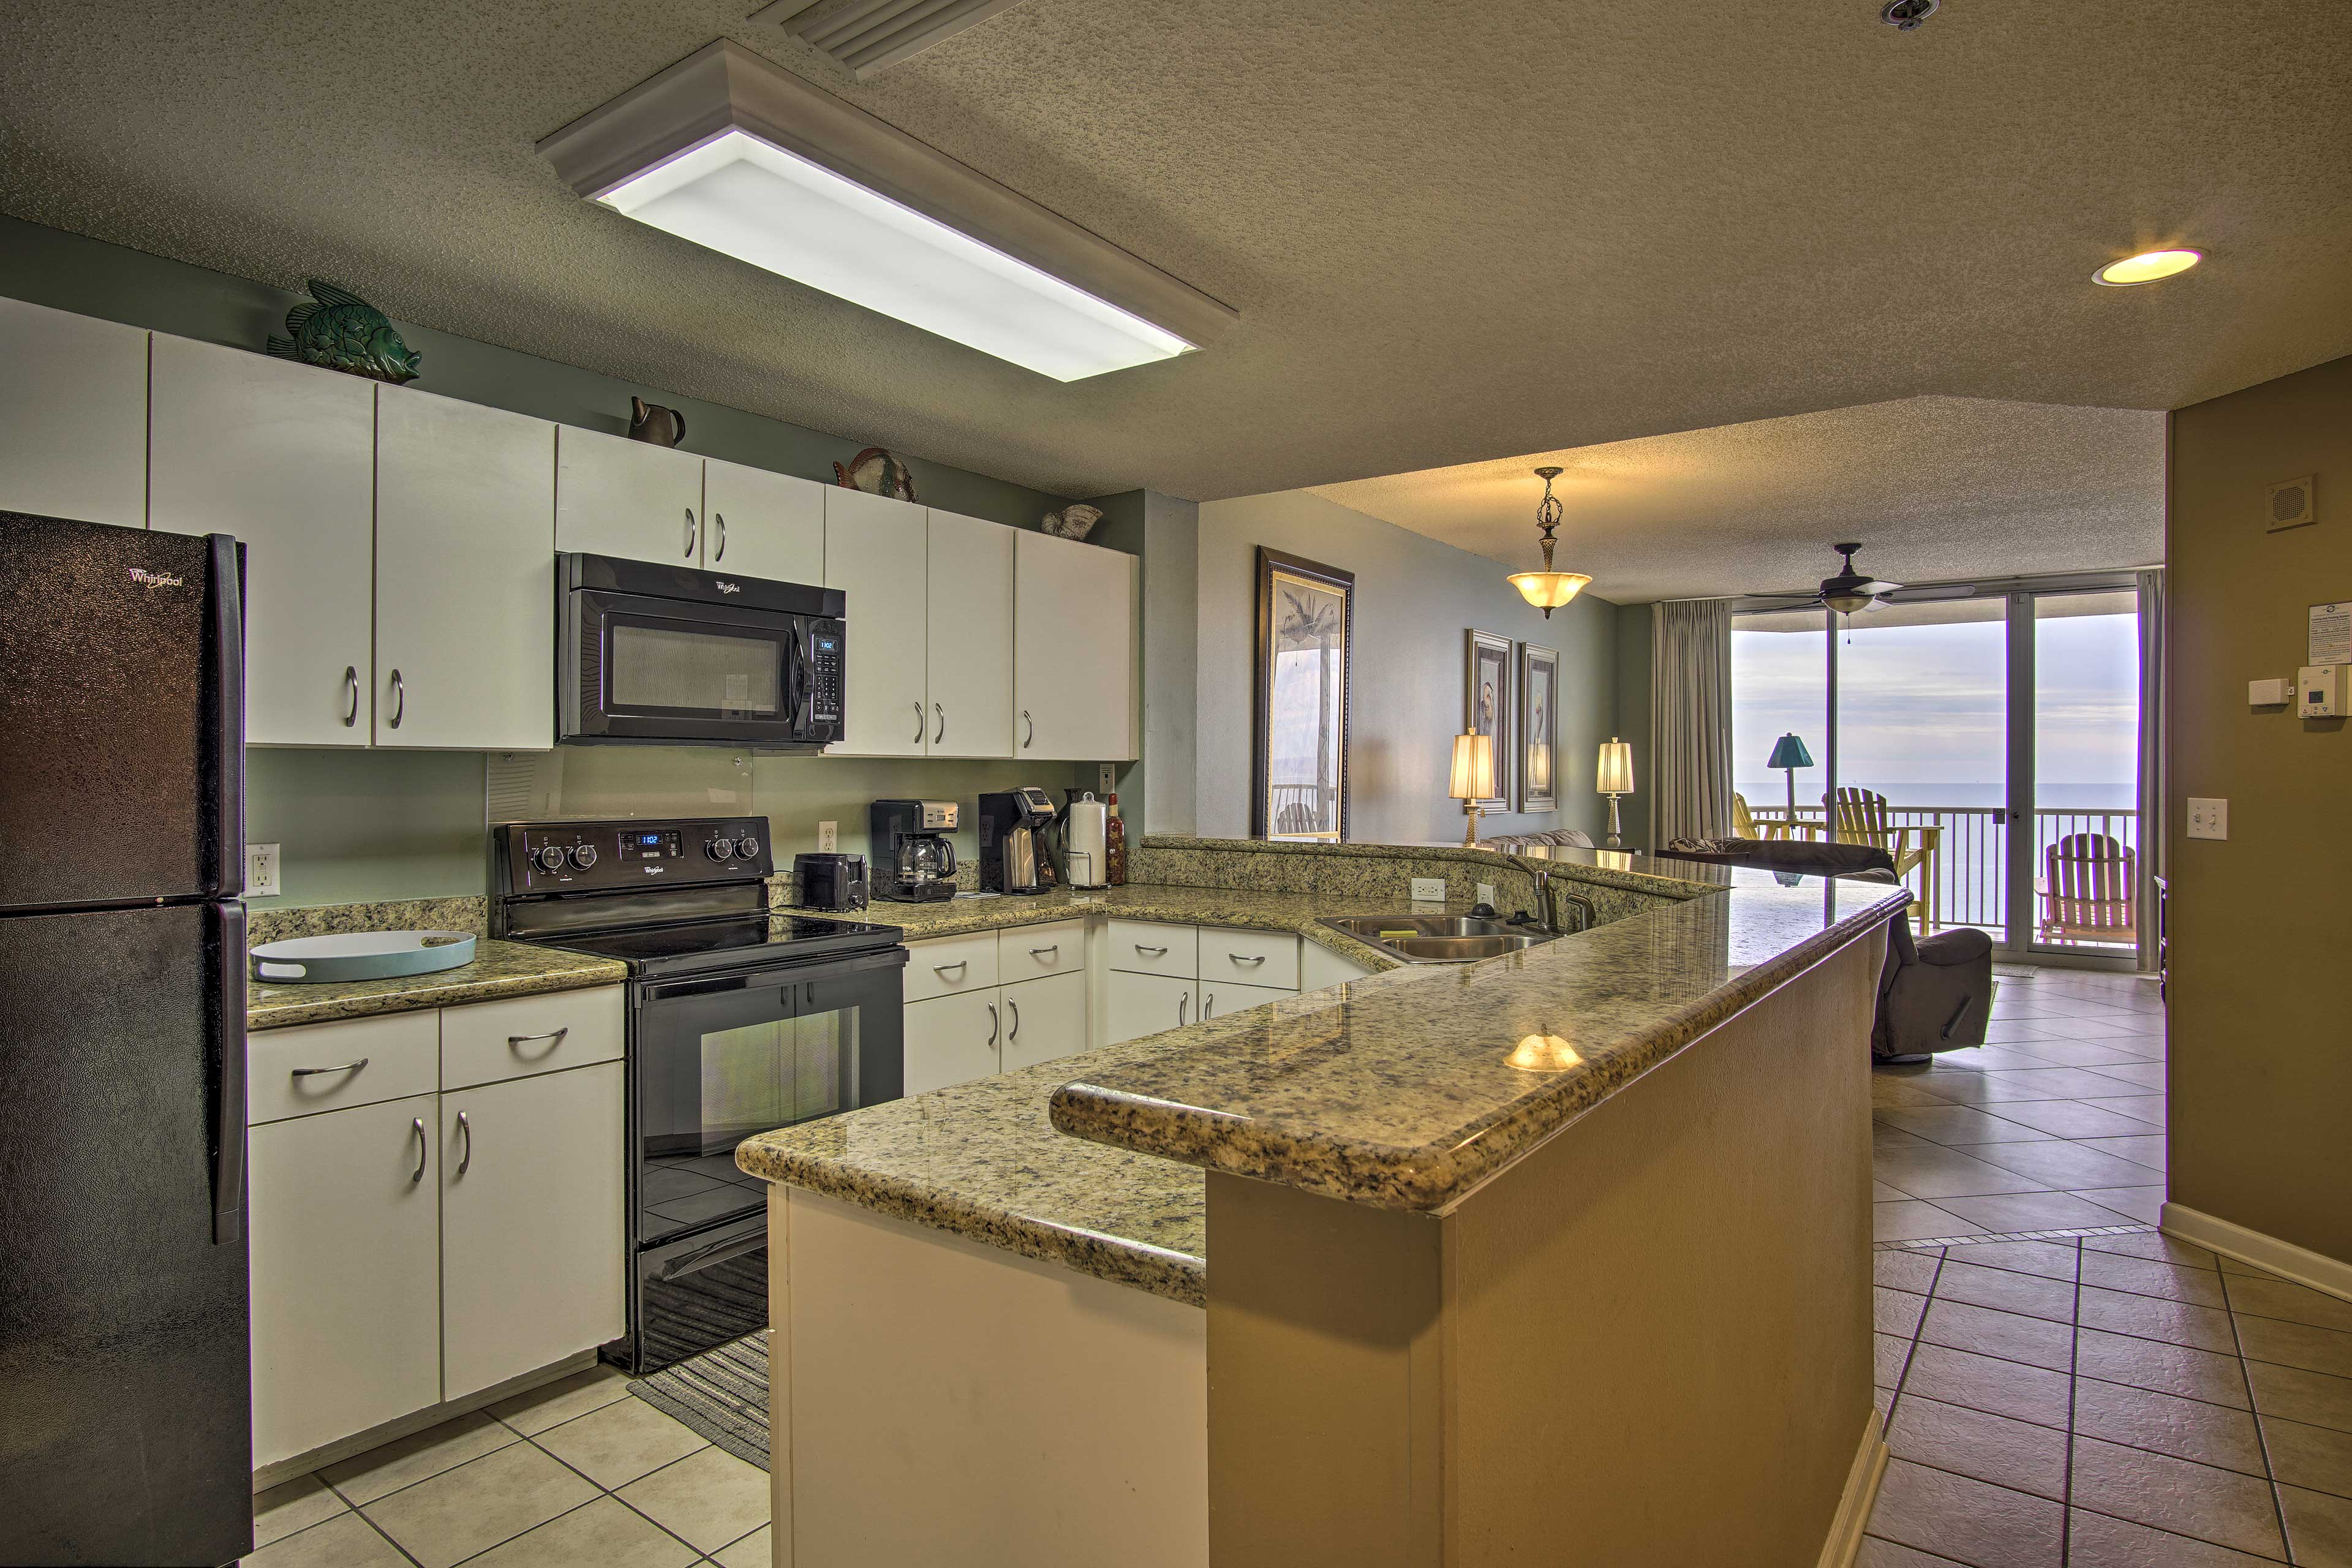 Granite countertops highlight the fully equipped kitchen.